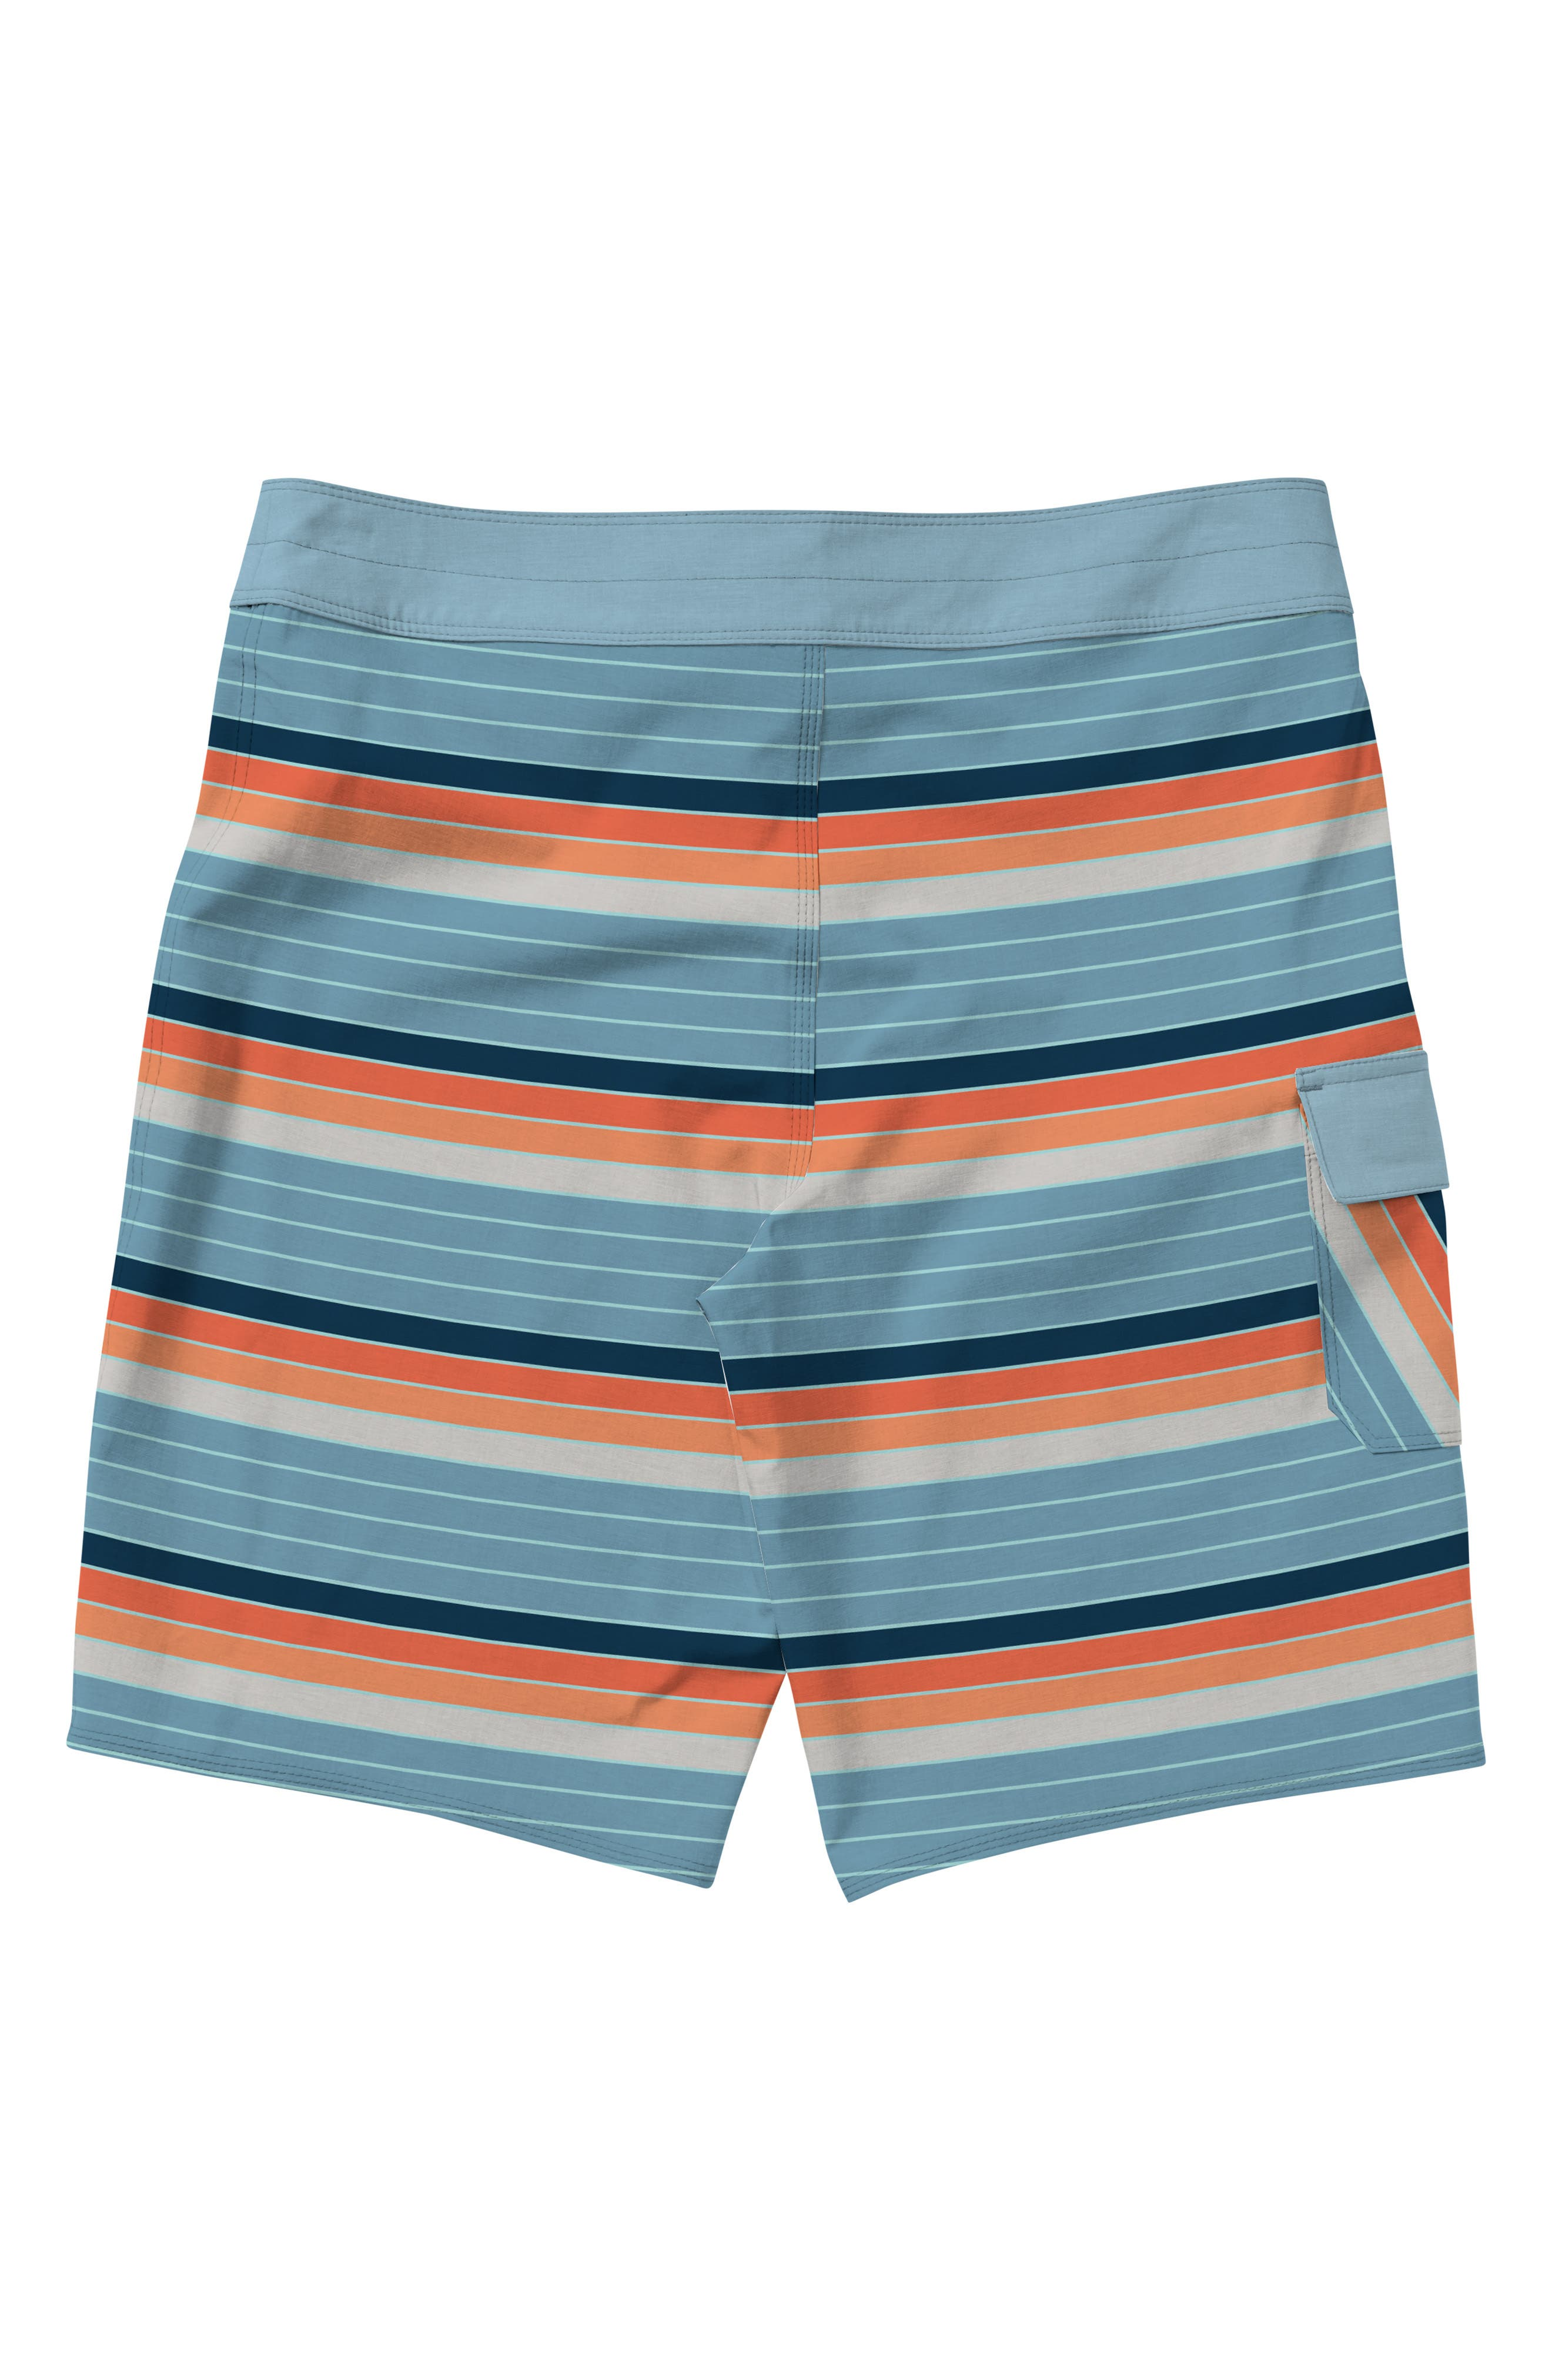 All Day OG Stripe Board Shorts,                             Alternate thumbnail 2, color,                             Coral